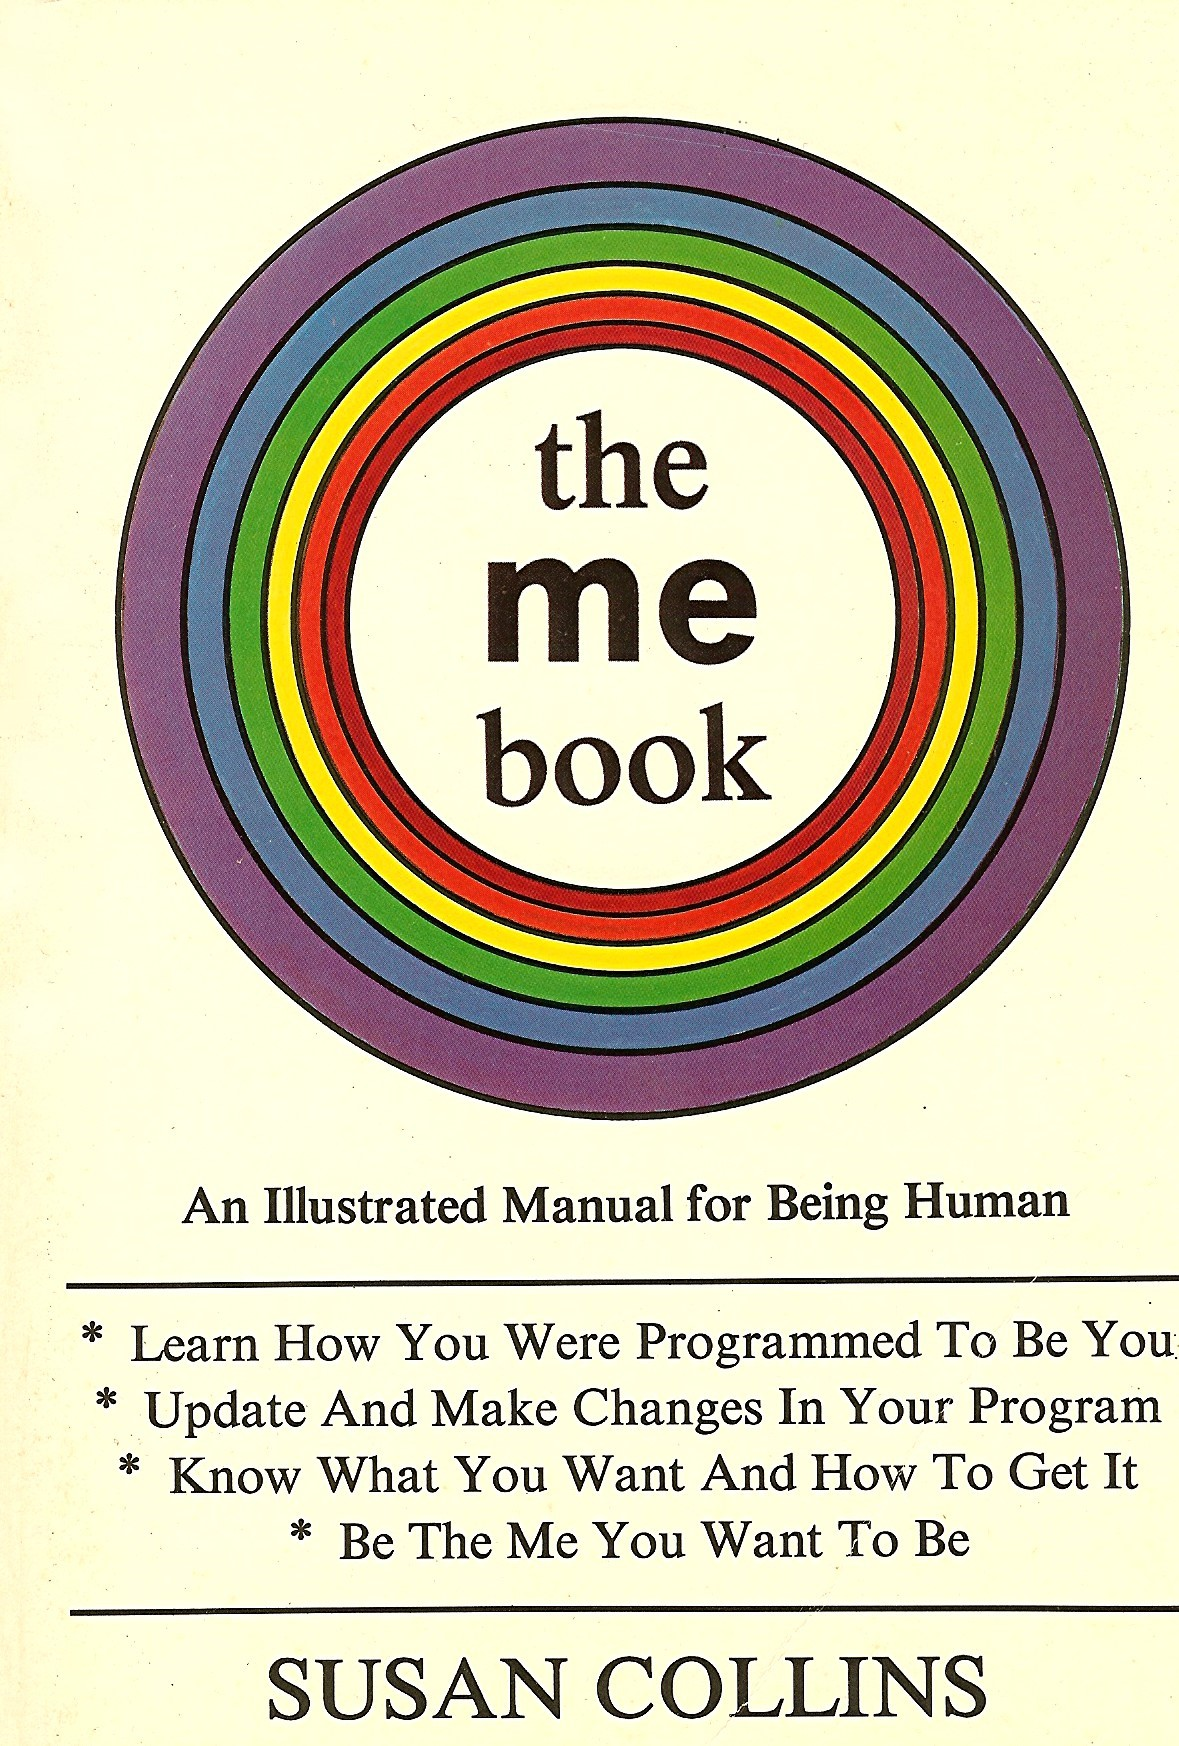 The Me Book by Susan Ford Collins